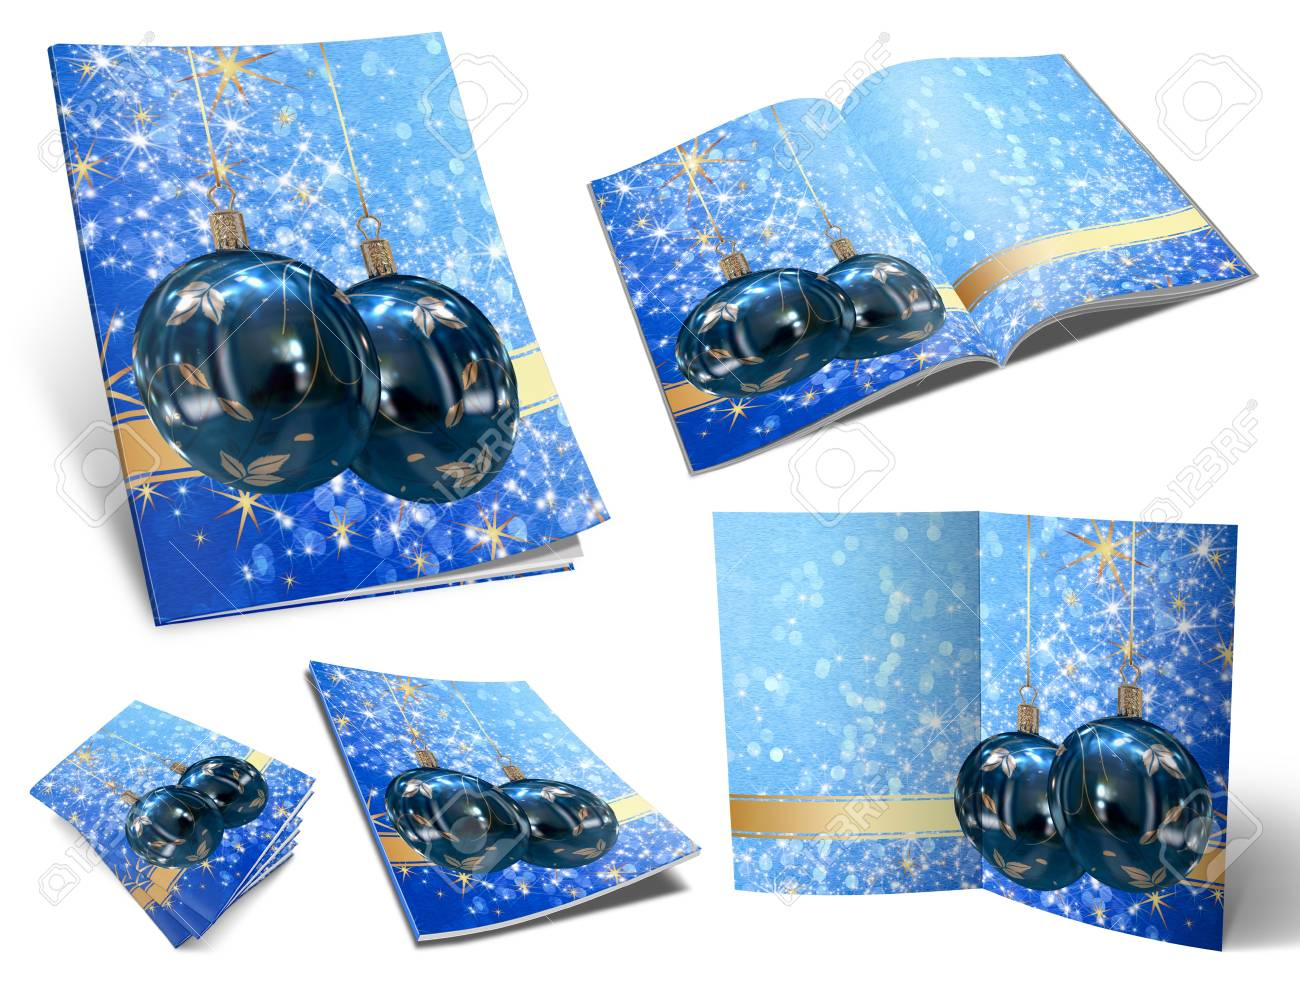 Collection of Christmas balls picture books Stock Photo - 11208728